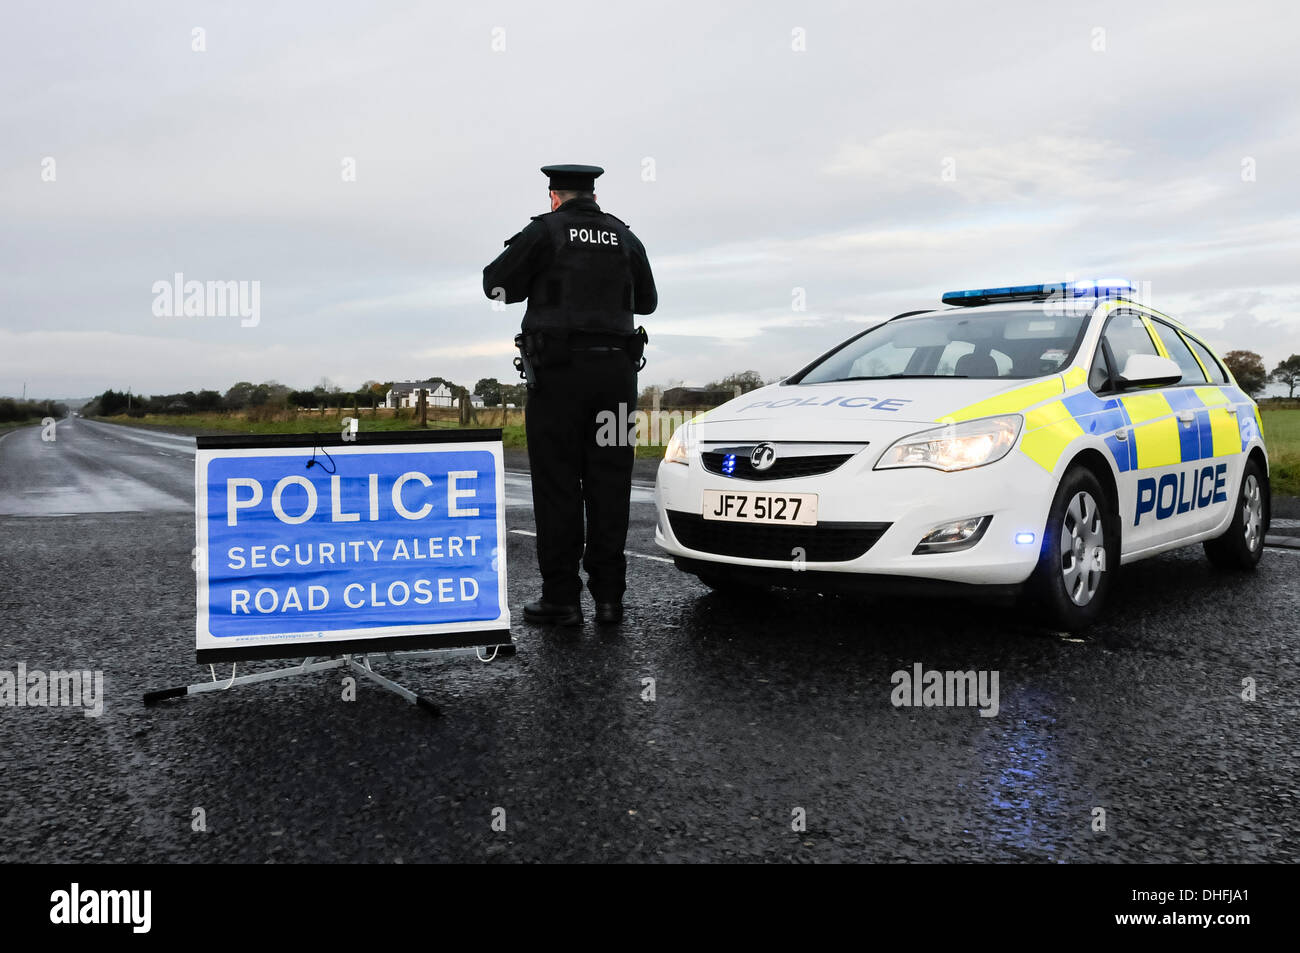 Nutts Corner, Co. Antrim, Northern Ireland. 9th Nov 2013 - A security alert closes the A52 between Belfast and Antrim, the main A-class road to the International Airport, for a second day.  Nothing has yet been found. Credit:  Stephen Barnes/Alamy Live News - Stock Image